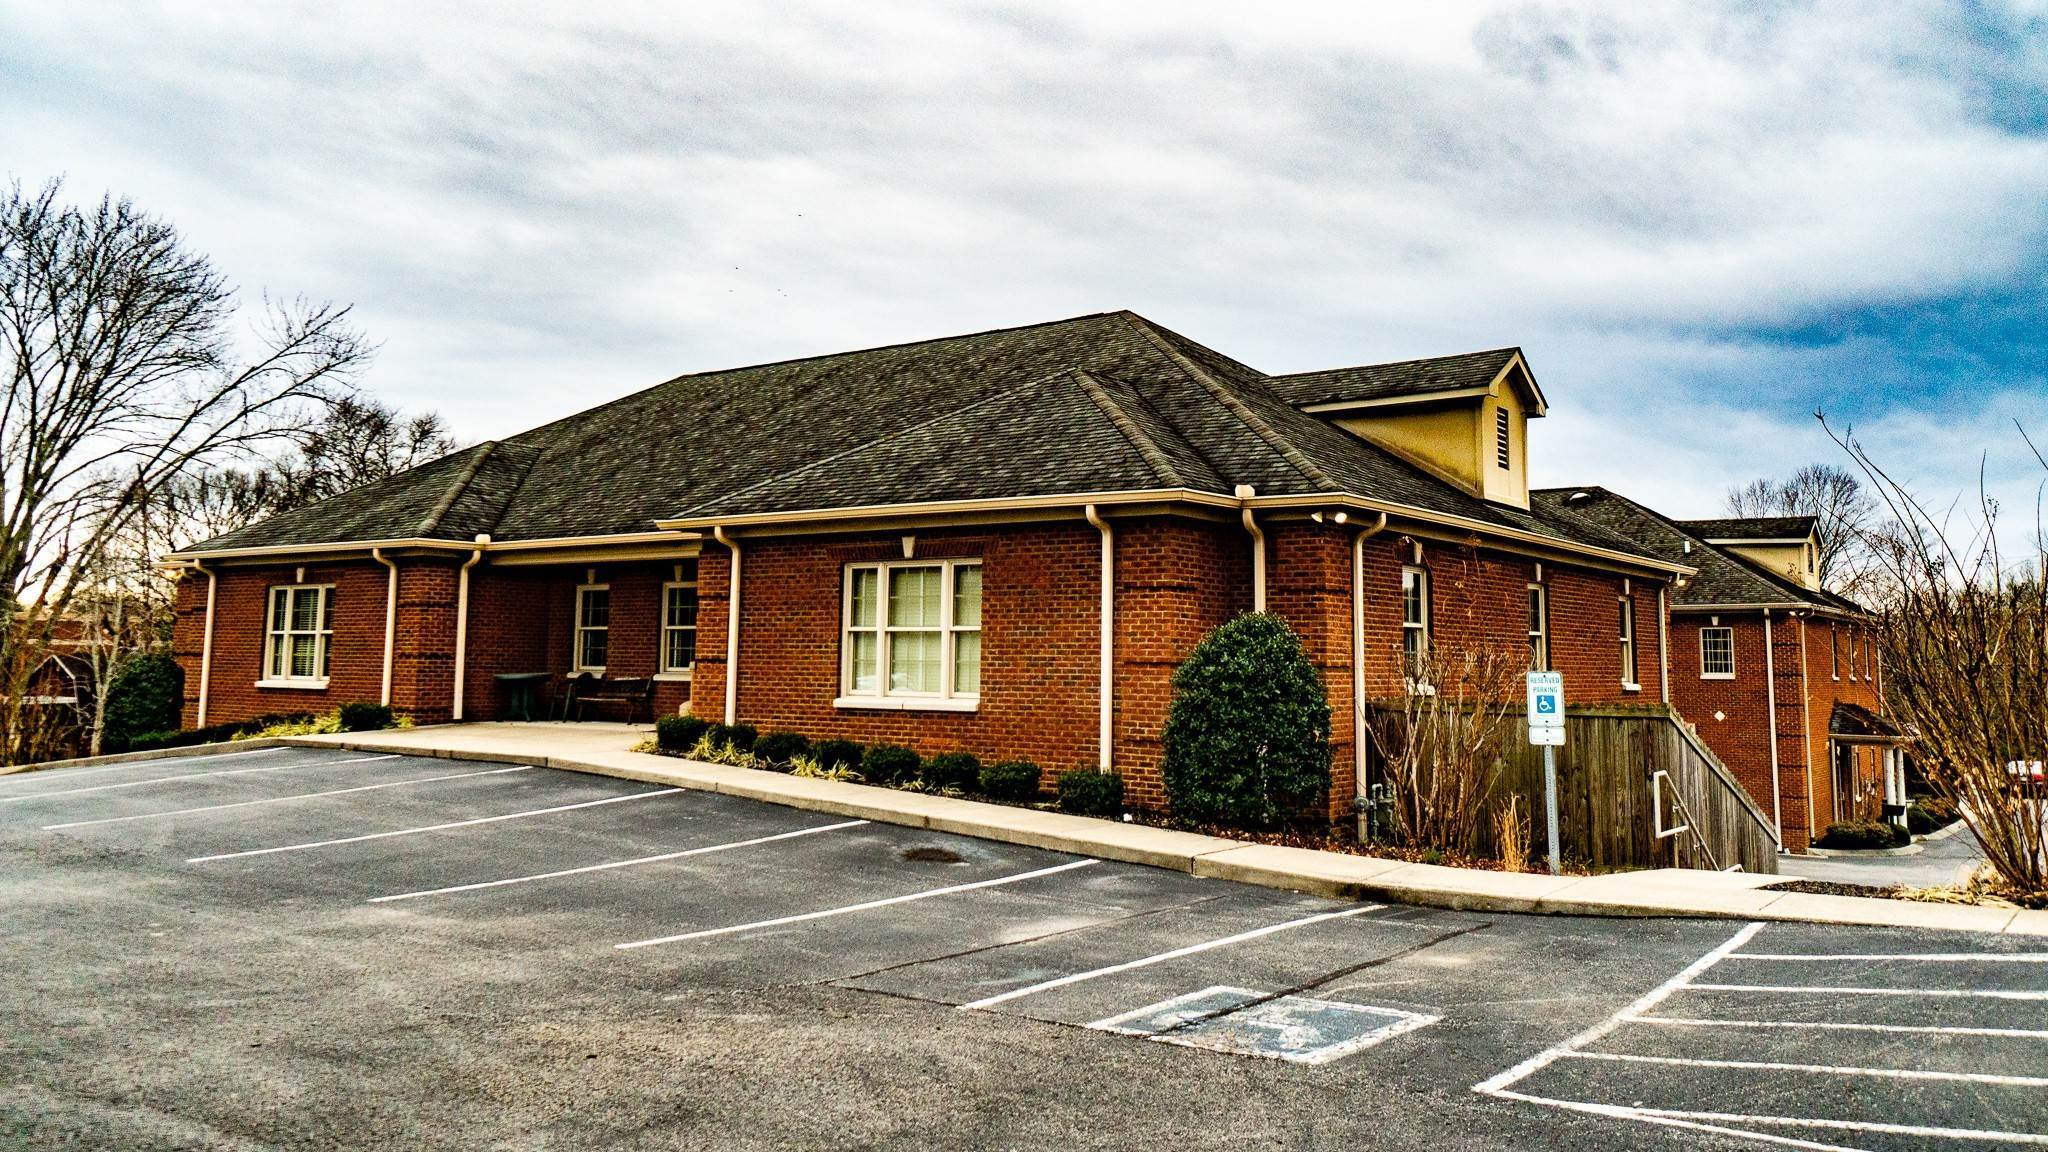 2. Commercial for Sale at 106 Duke Street Ashland City, Tennessee 37015 United States